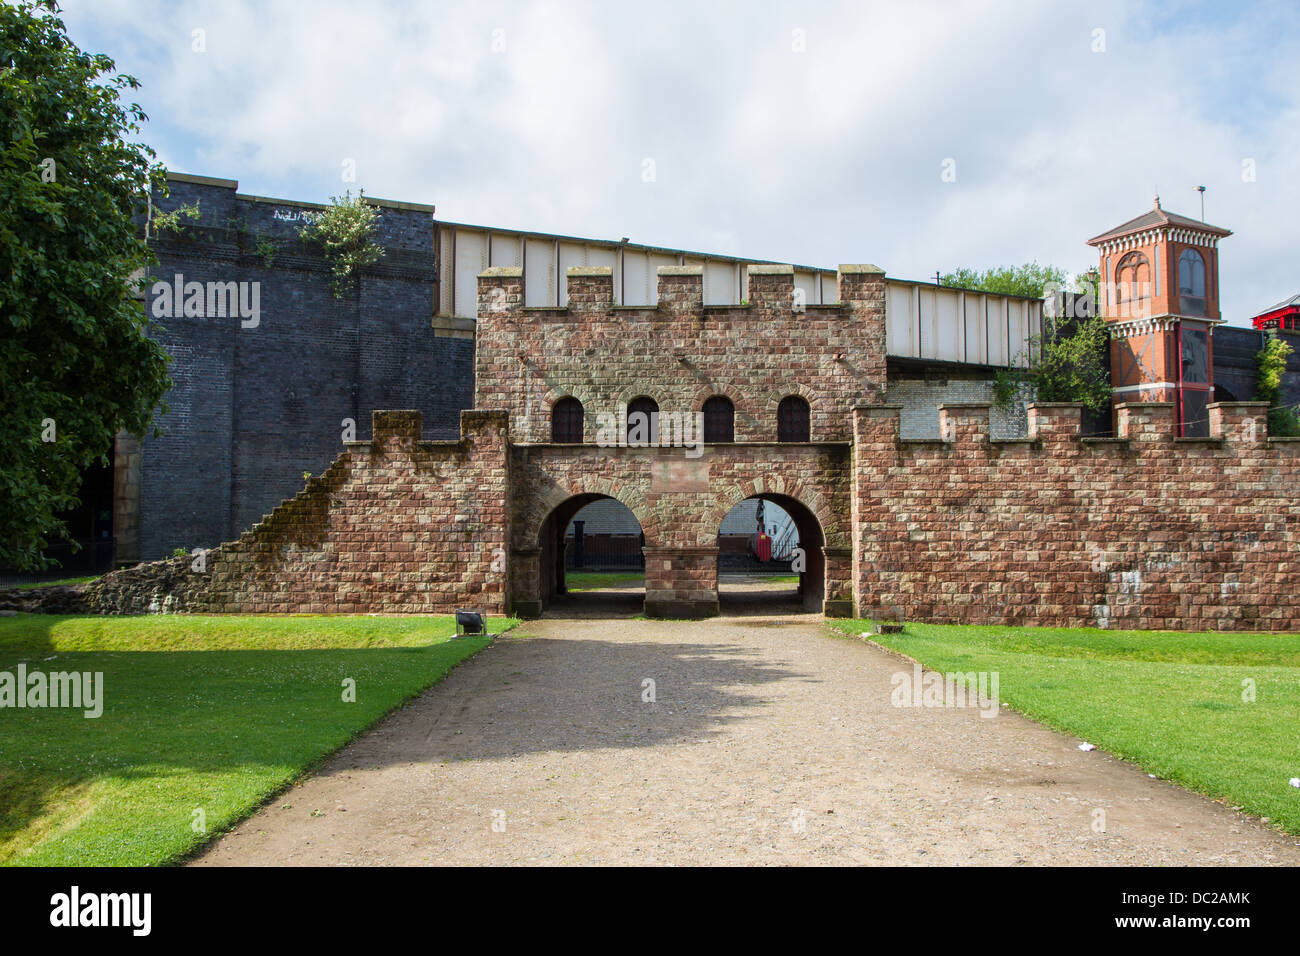 North Gate of Castlefield Roman Fort of Mamucium in Manchester. - Stock Image